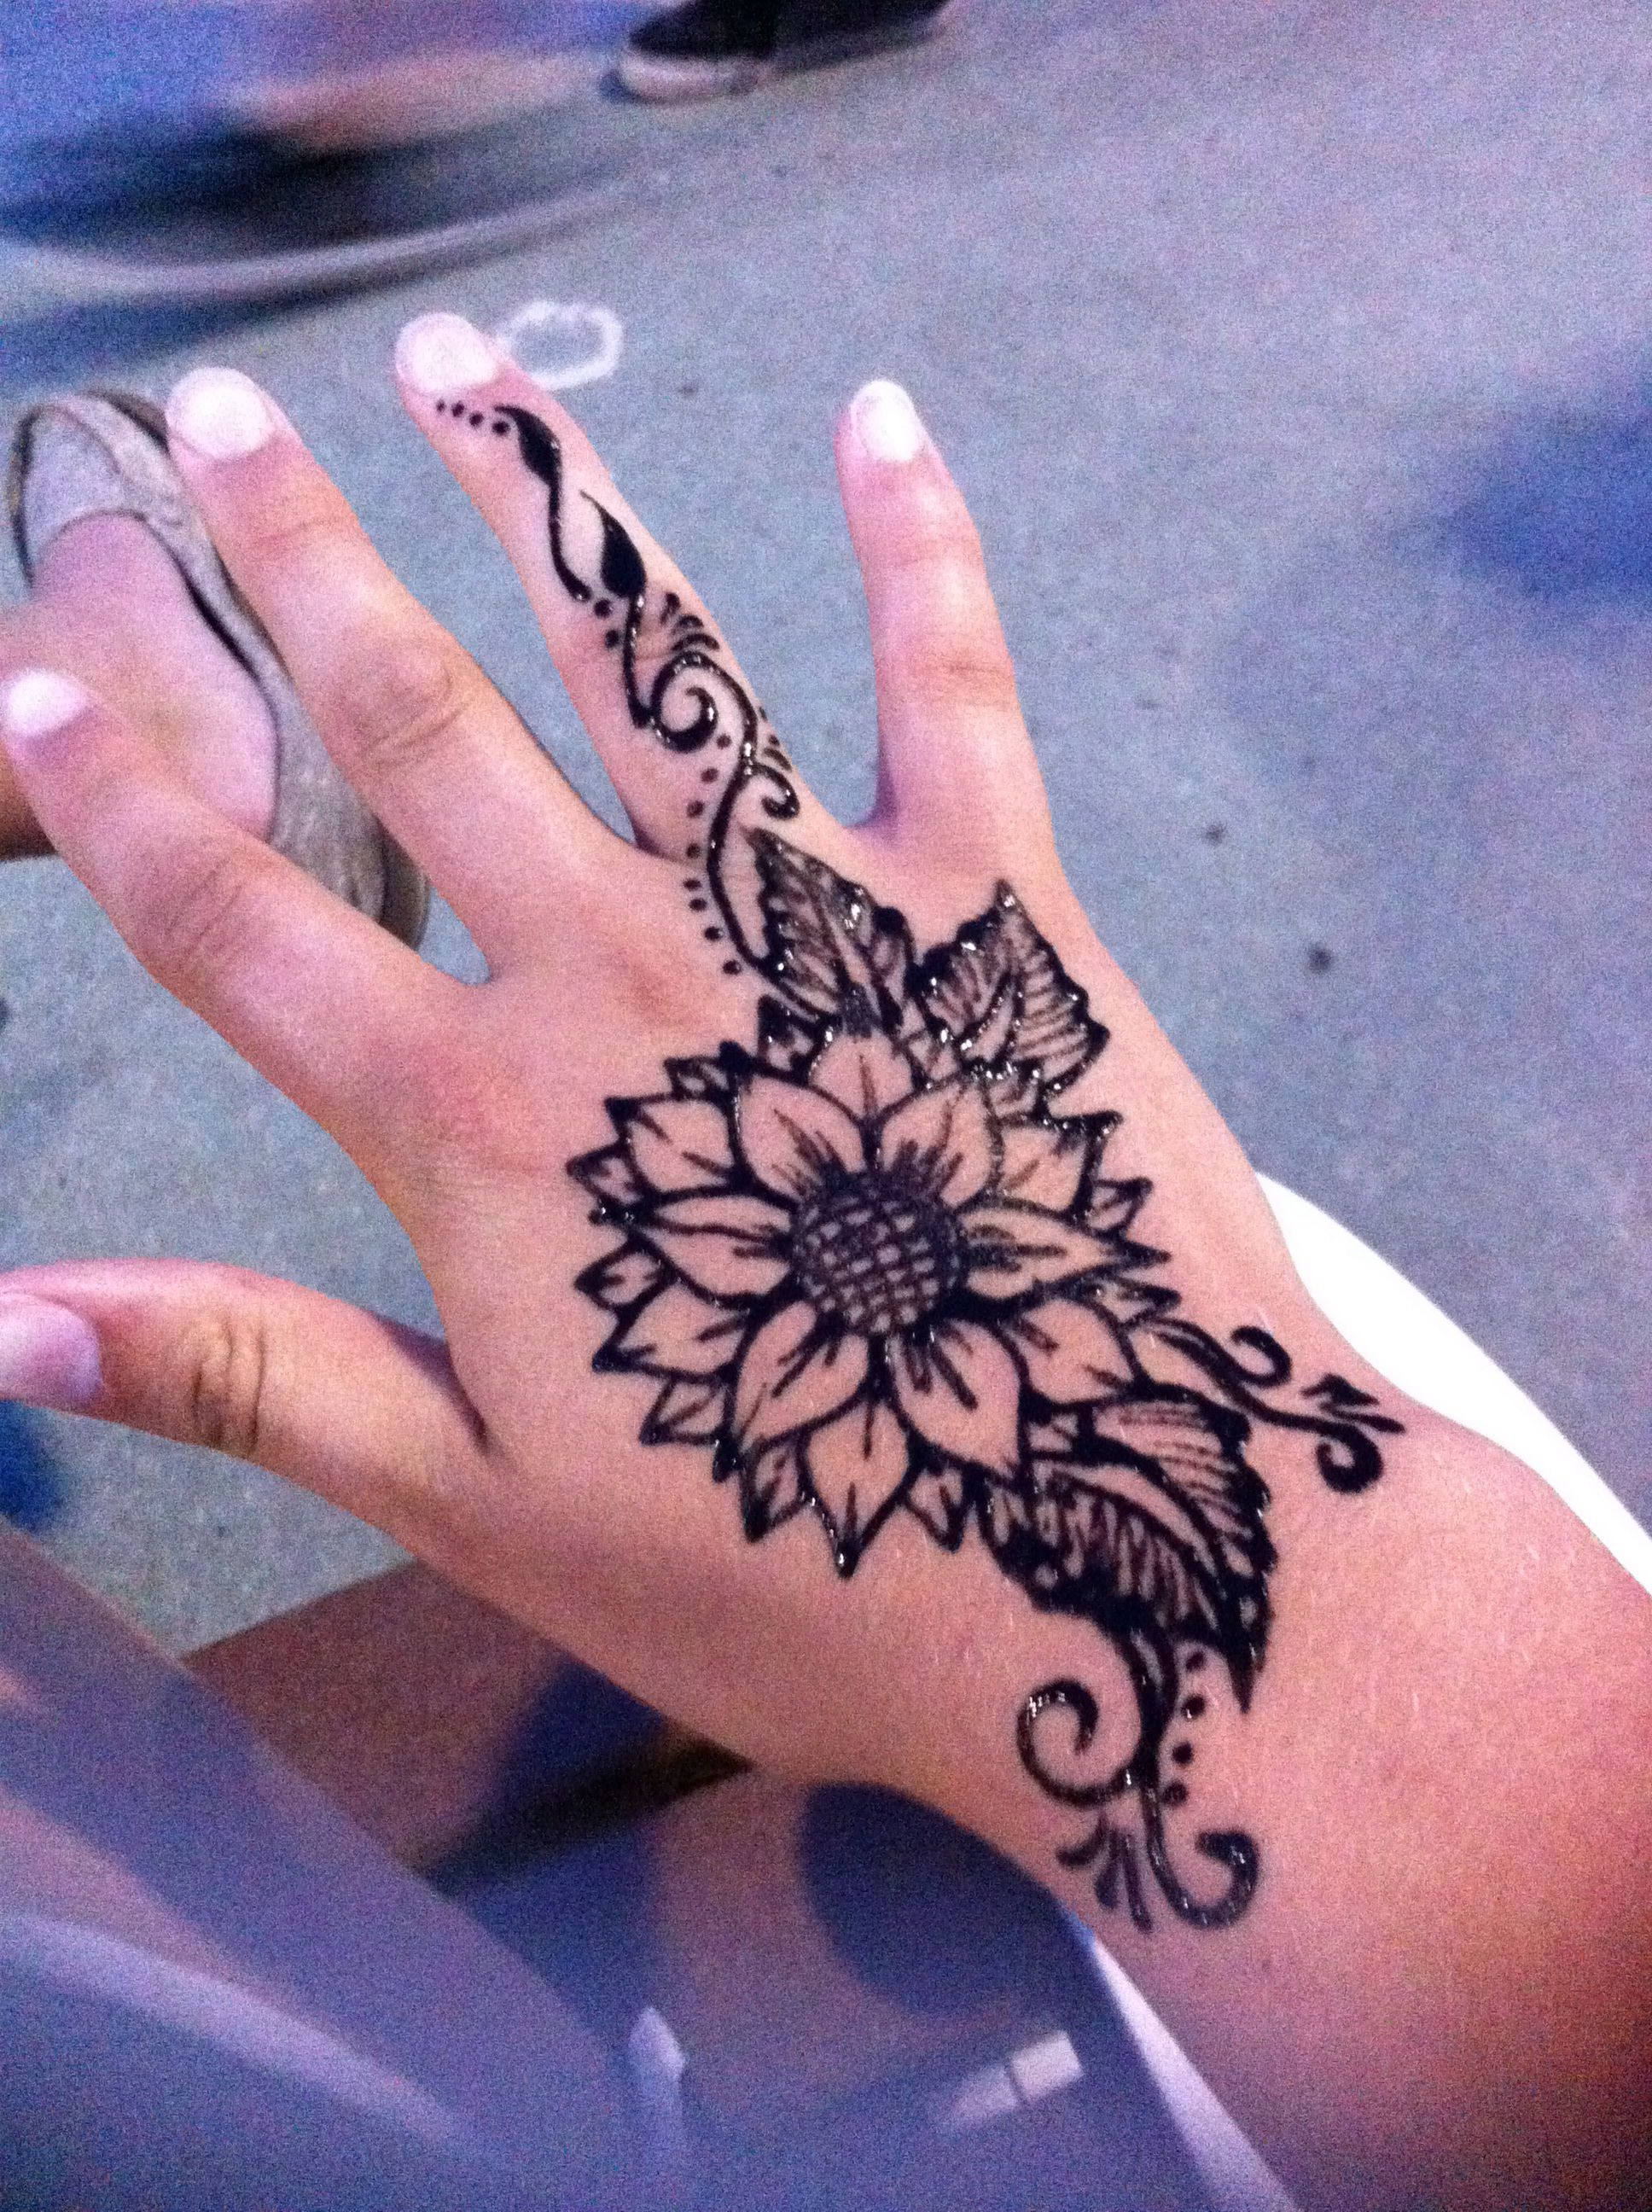 Simple Sun Henna Tattoo Designs: Henna Tattoo Designs, Henna